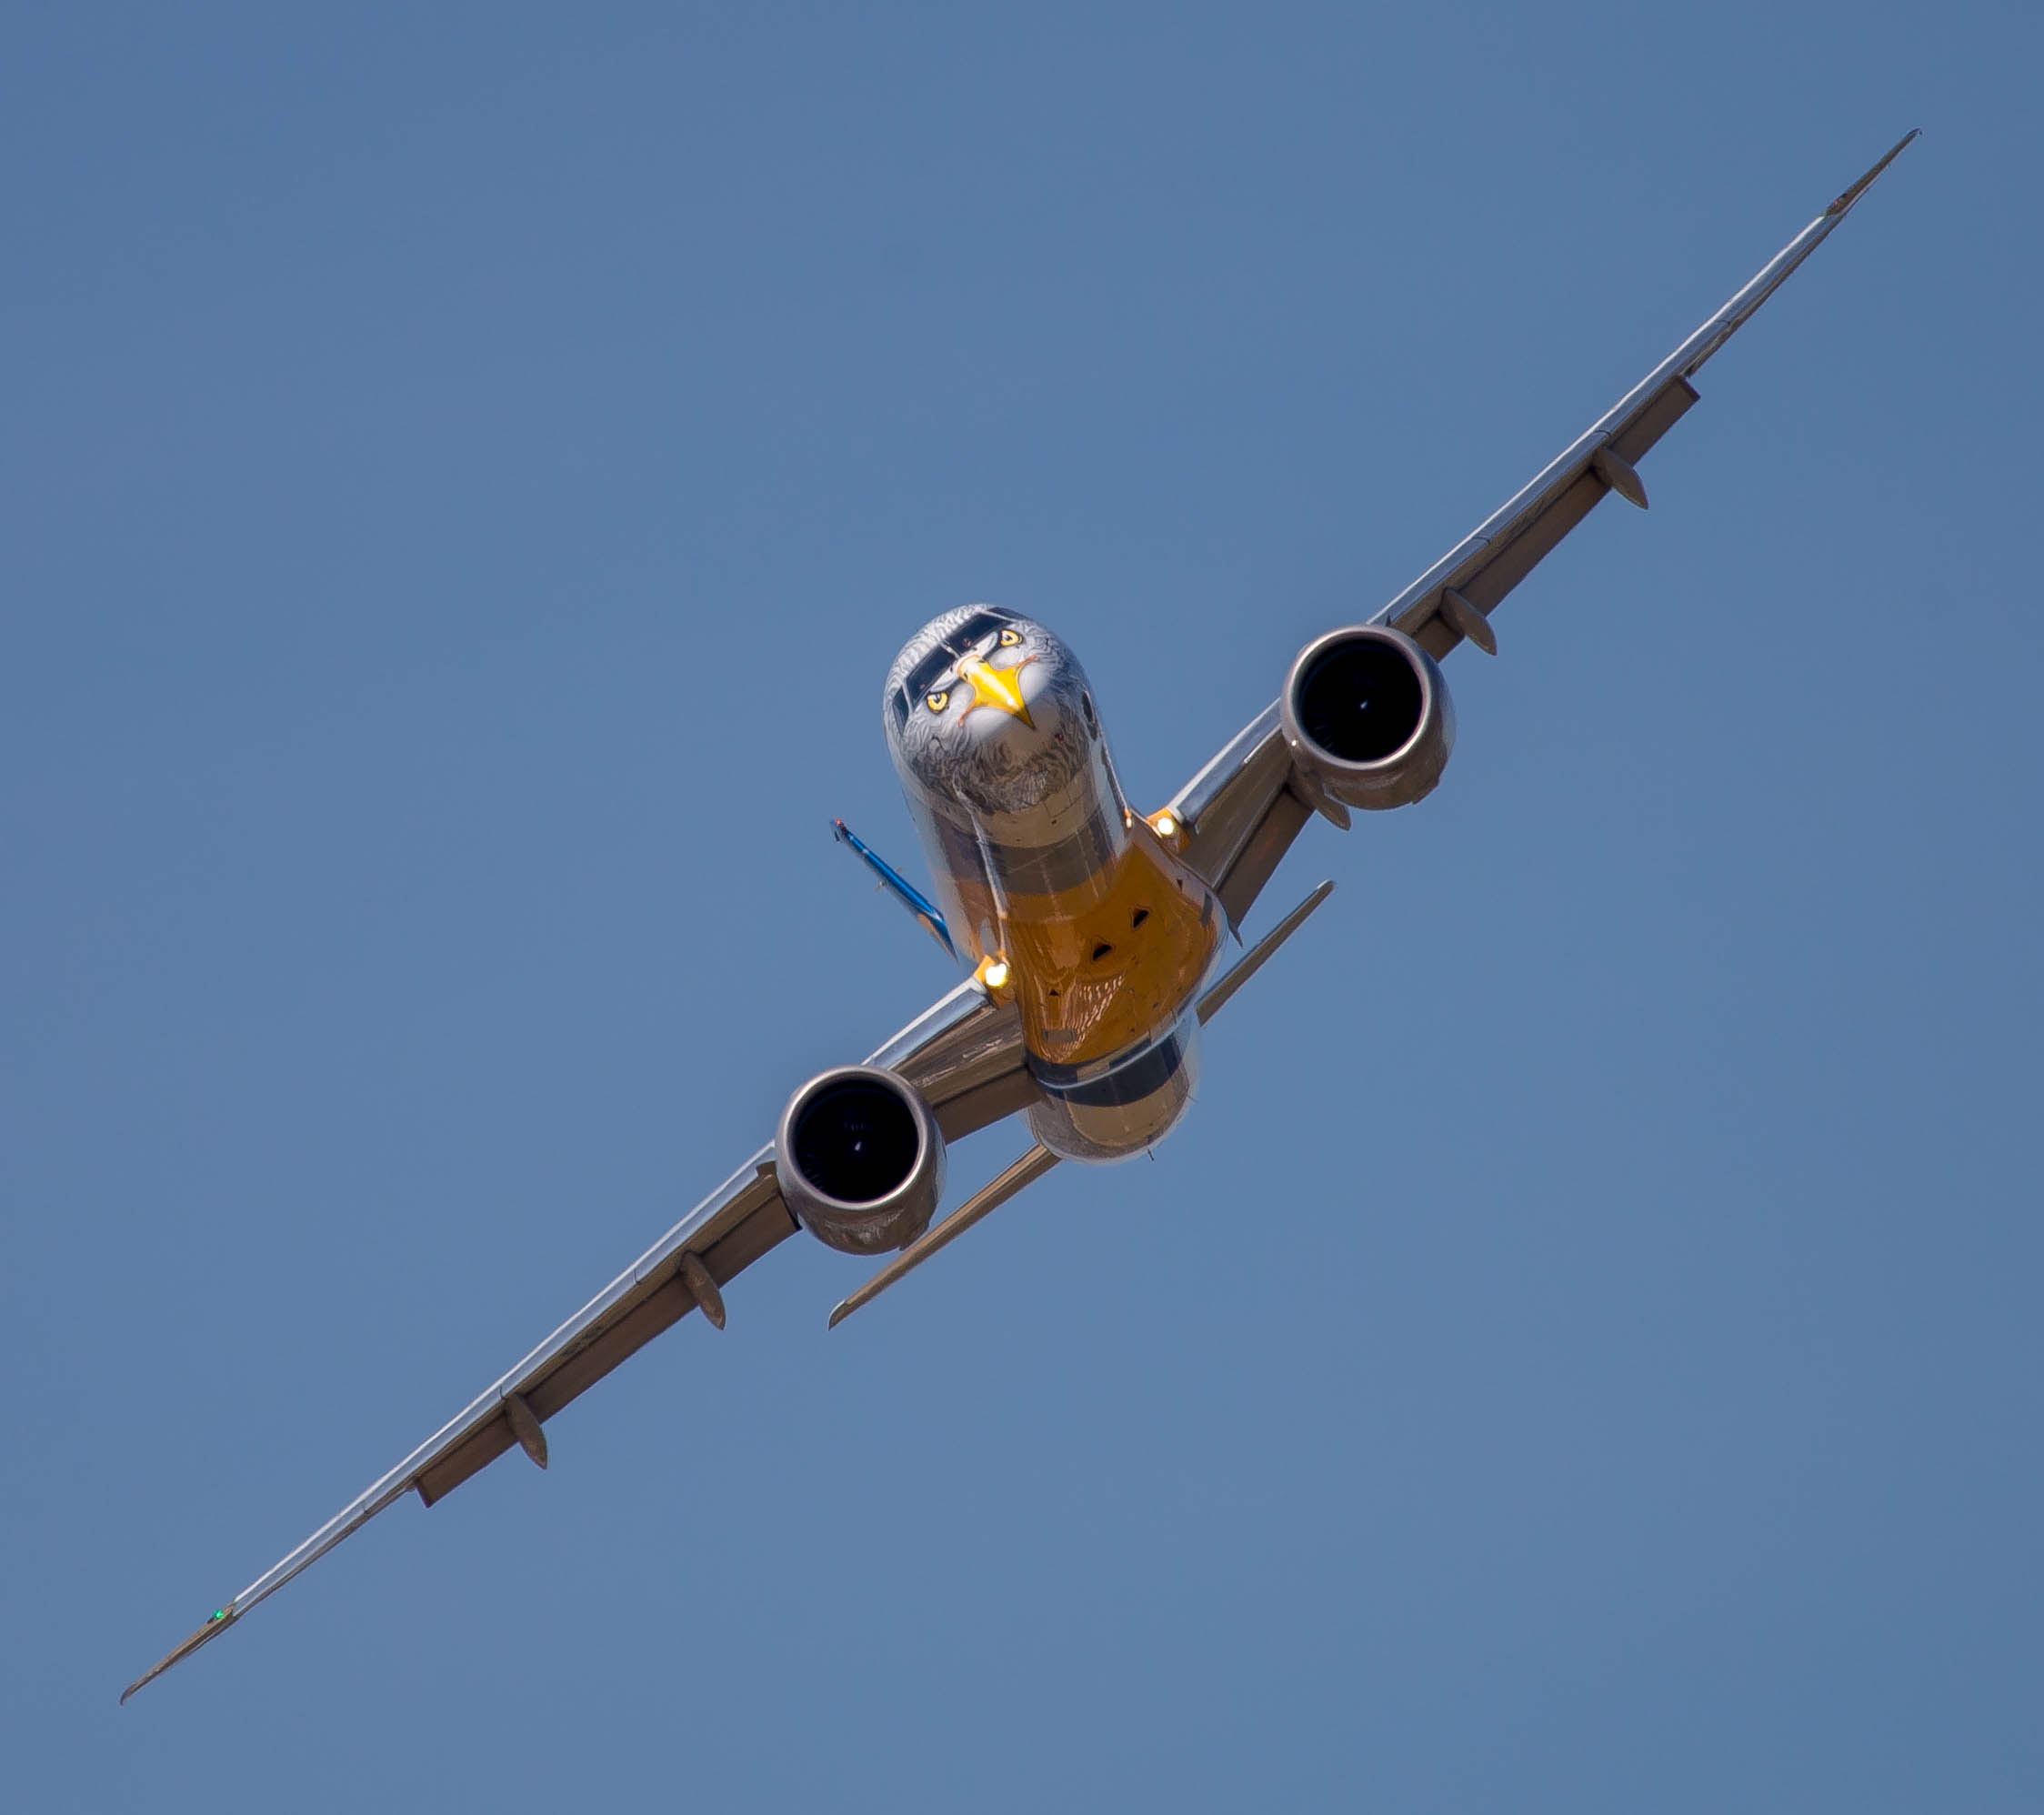 Embraer E-Jet E2 family - Wikipedia